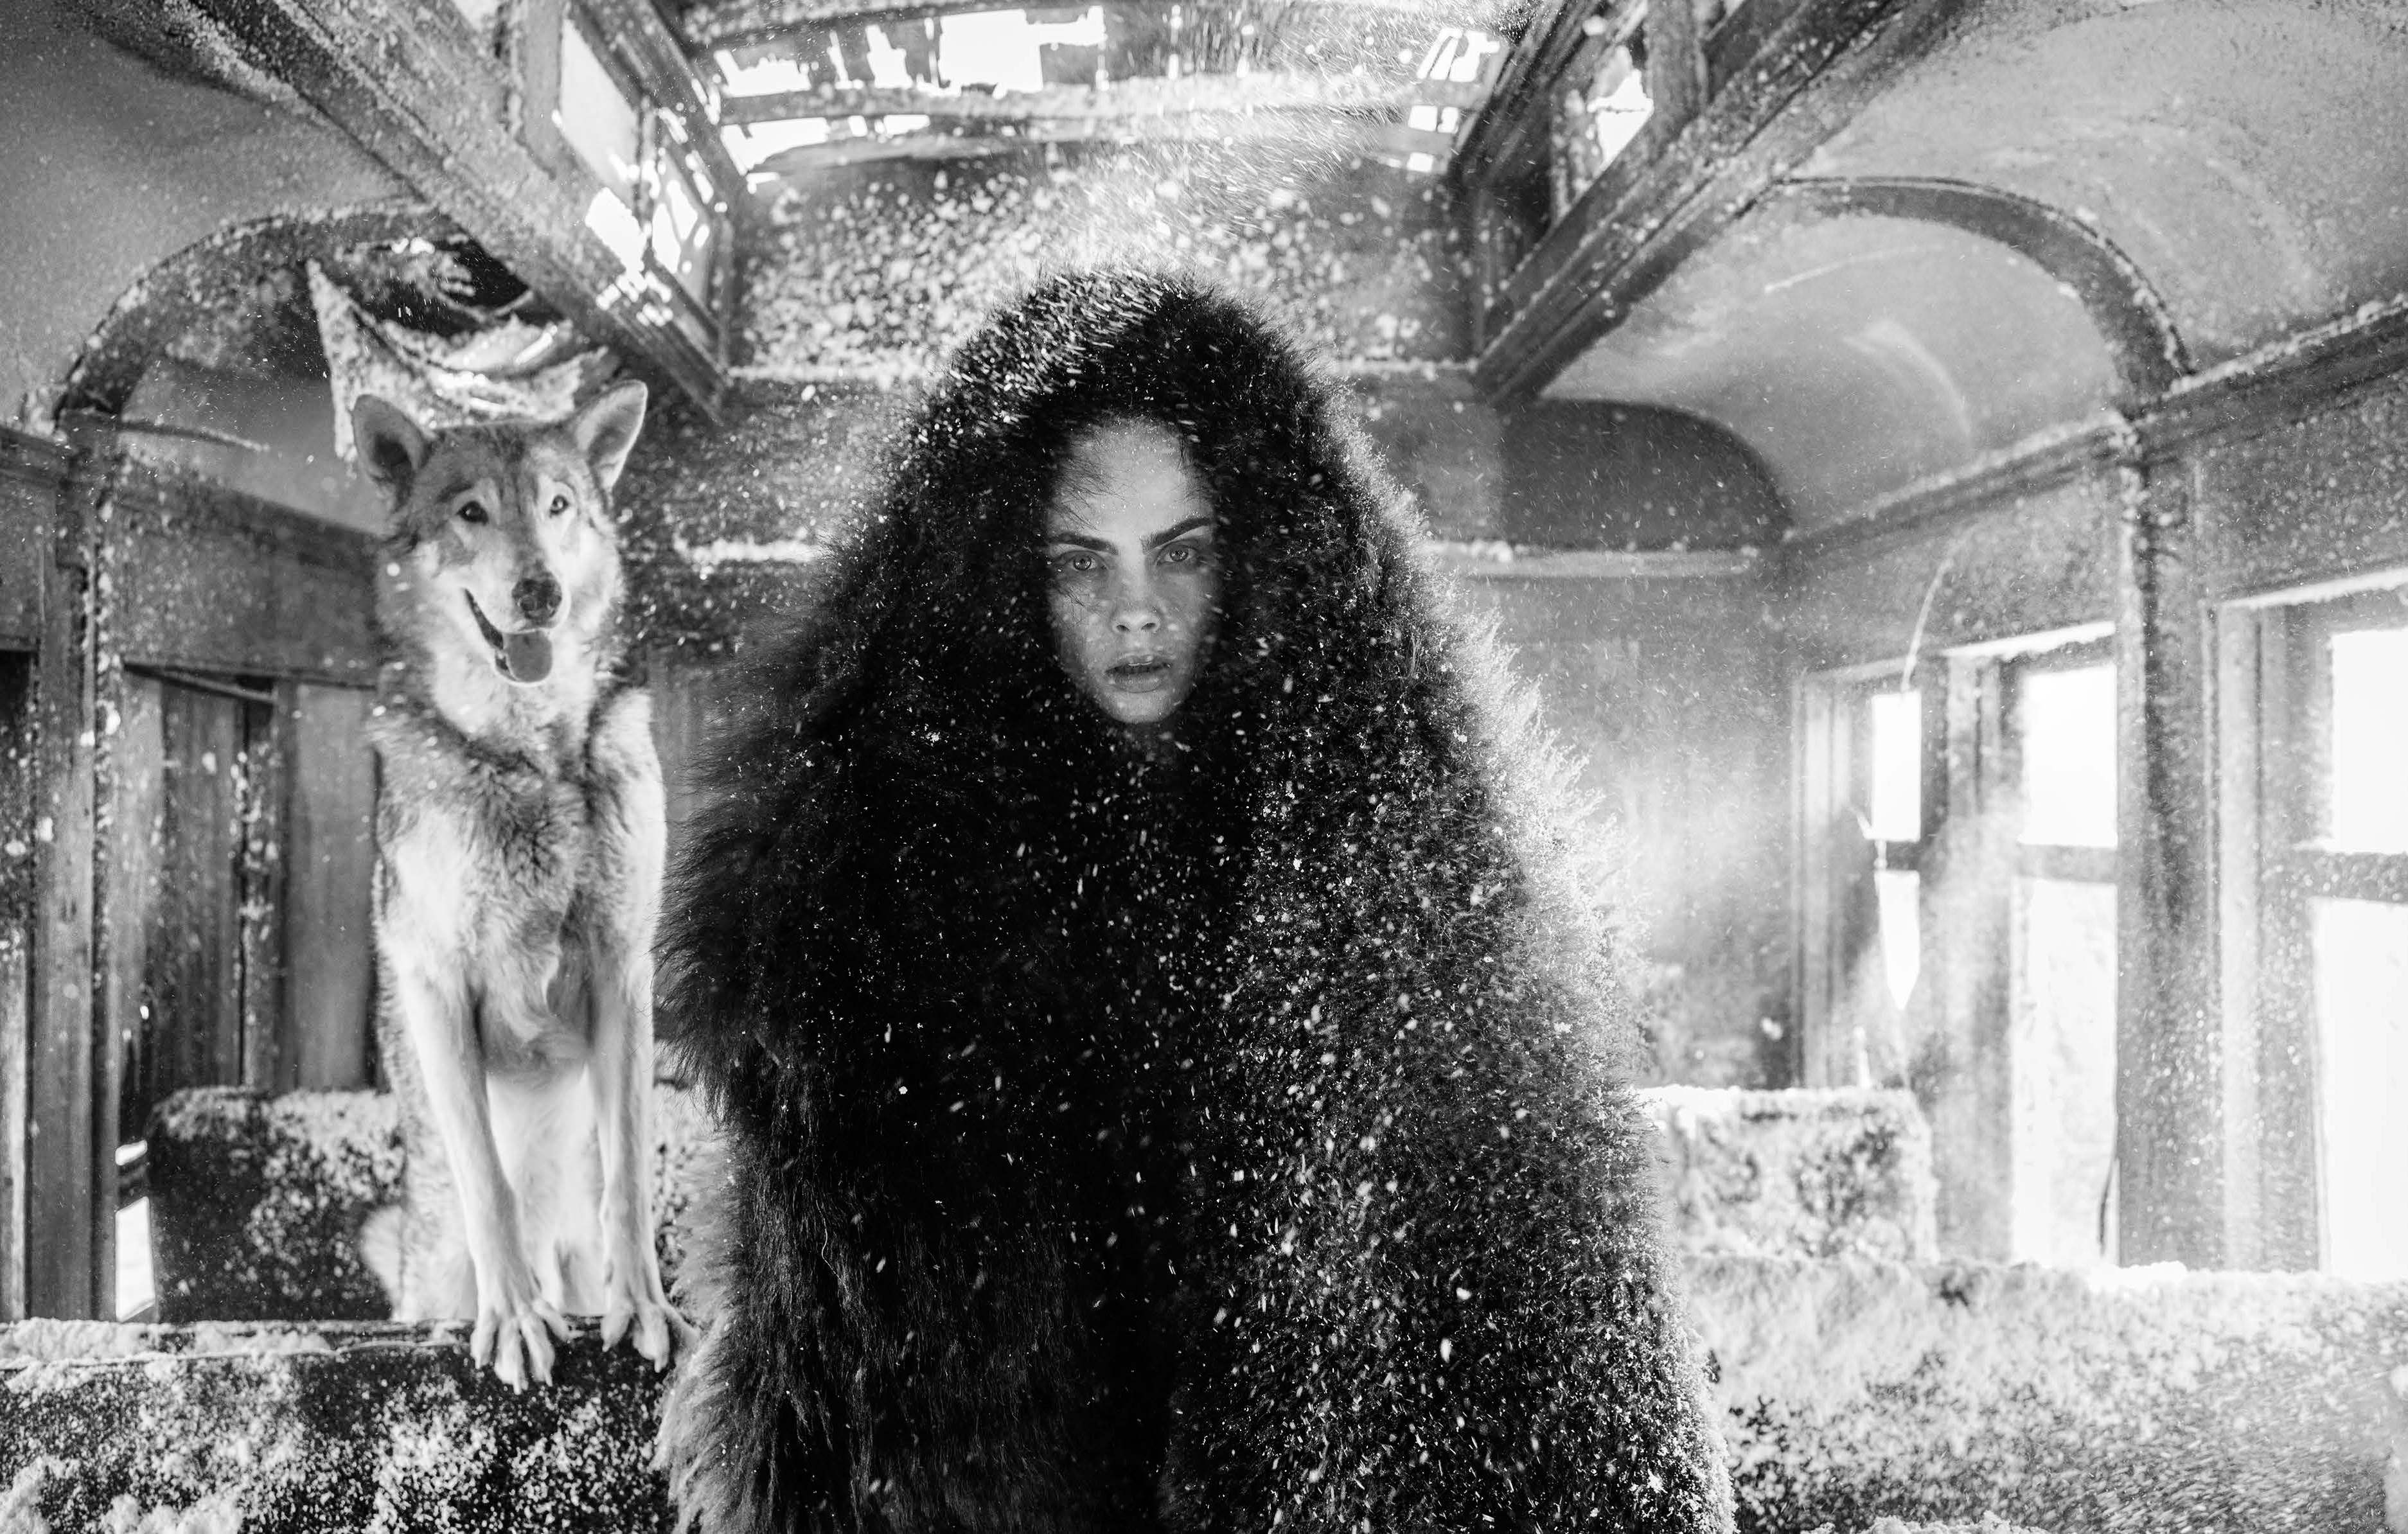 David Yarrow The Girl Who Cried Wolf Archival Pigment Print